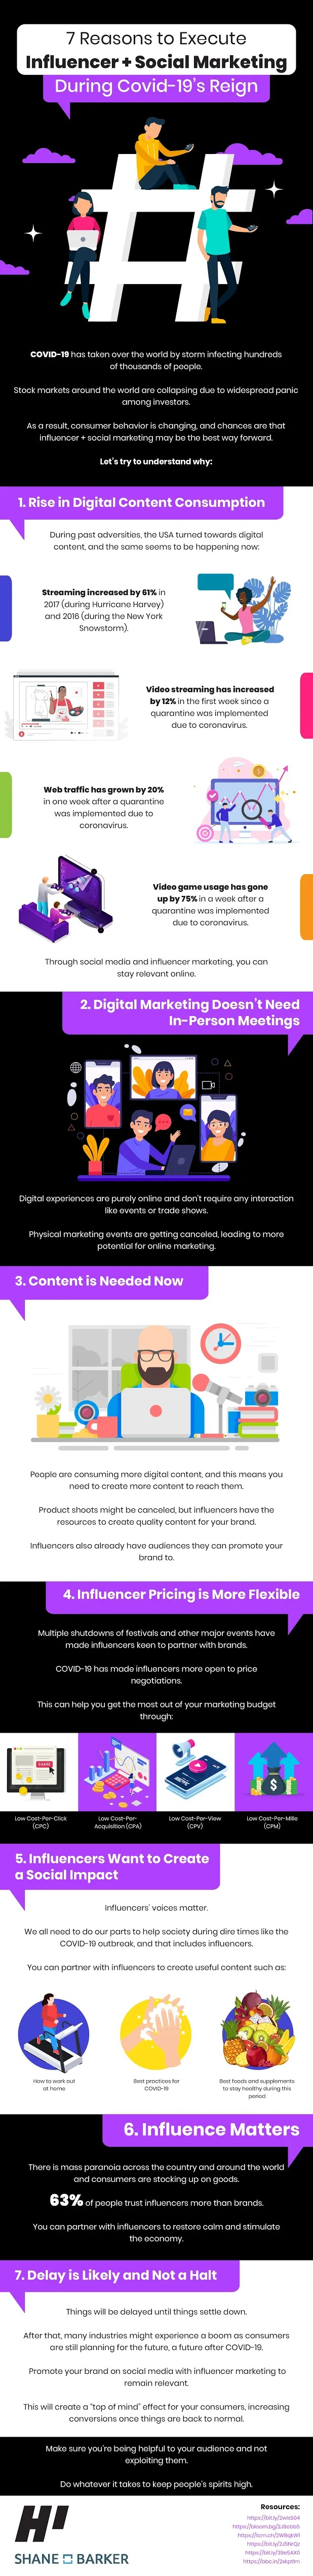 7 Reasons to Execute Influencer + Social Marketing During COVID-19's Reign #infographic